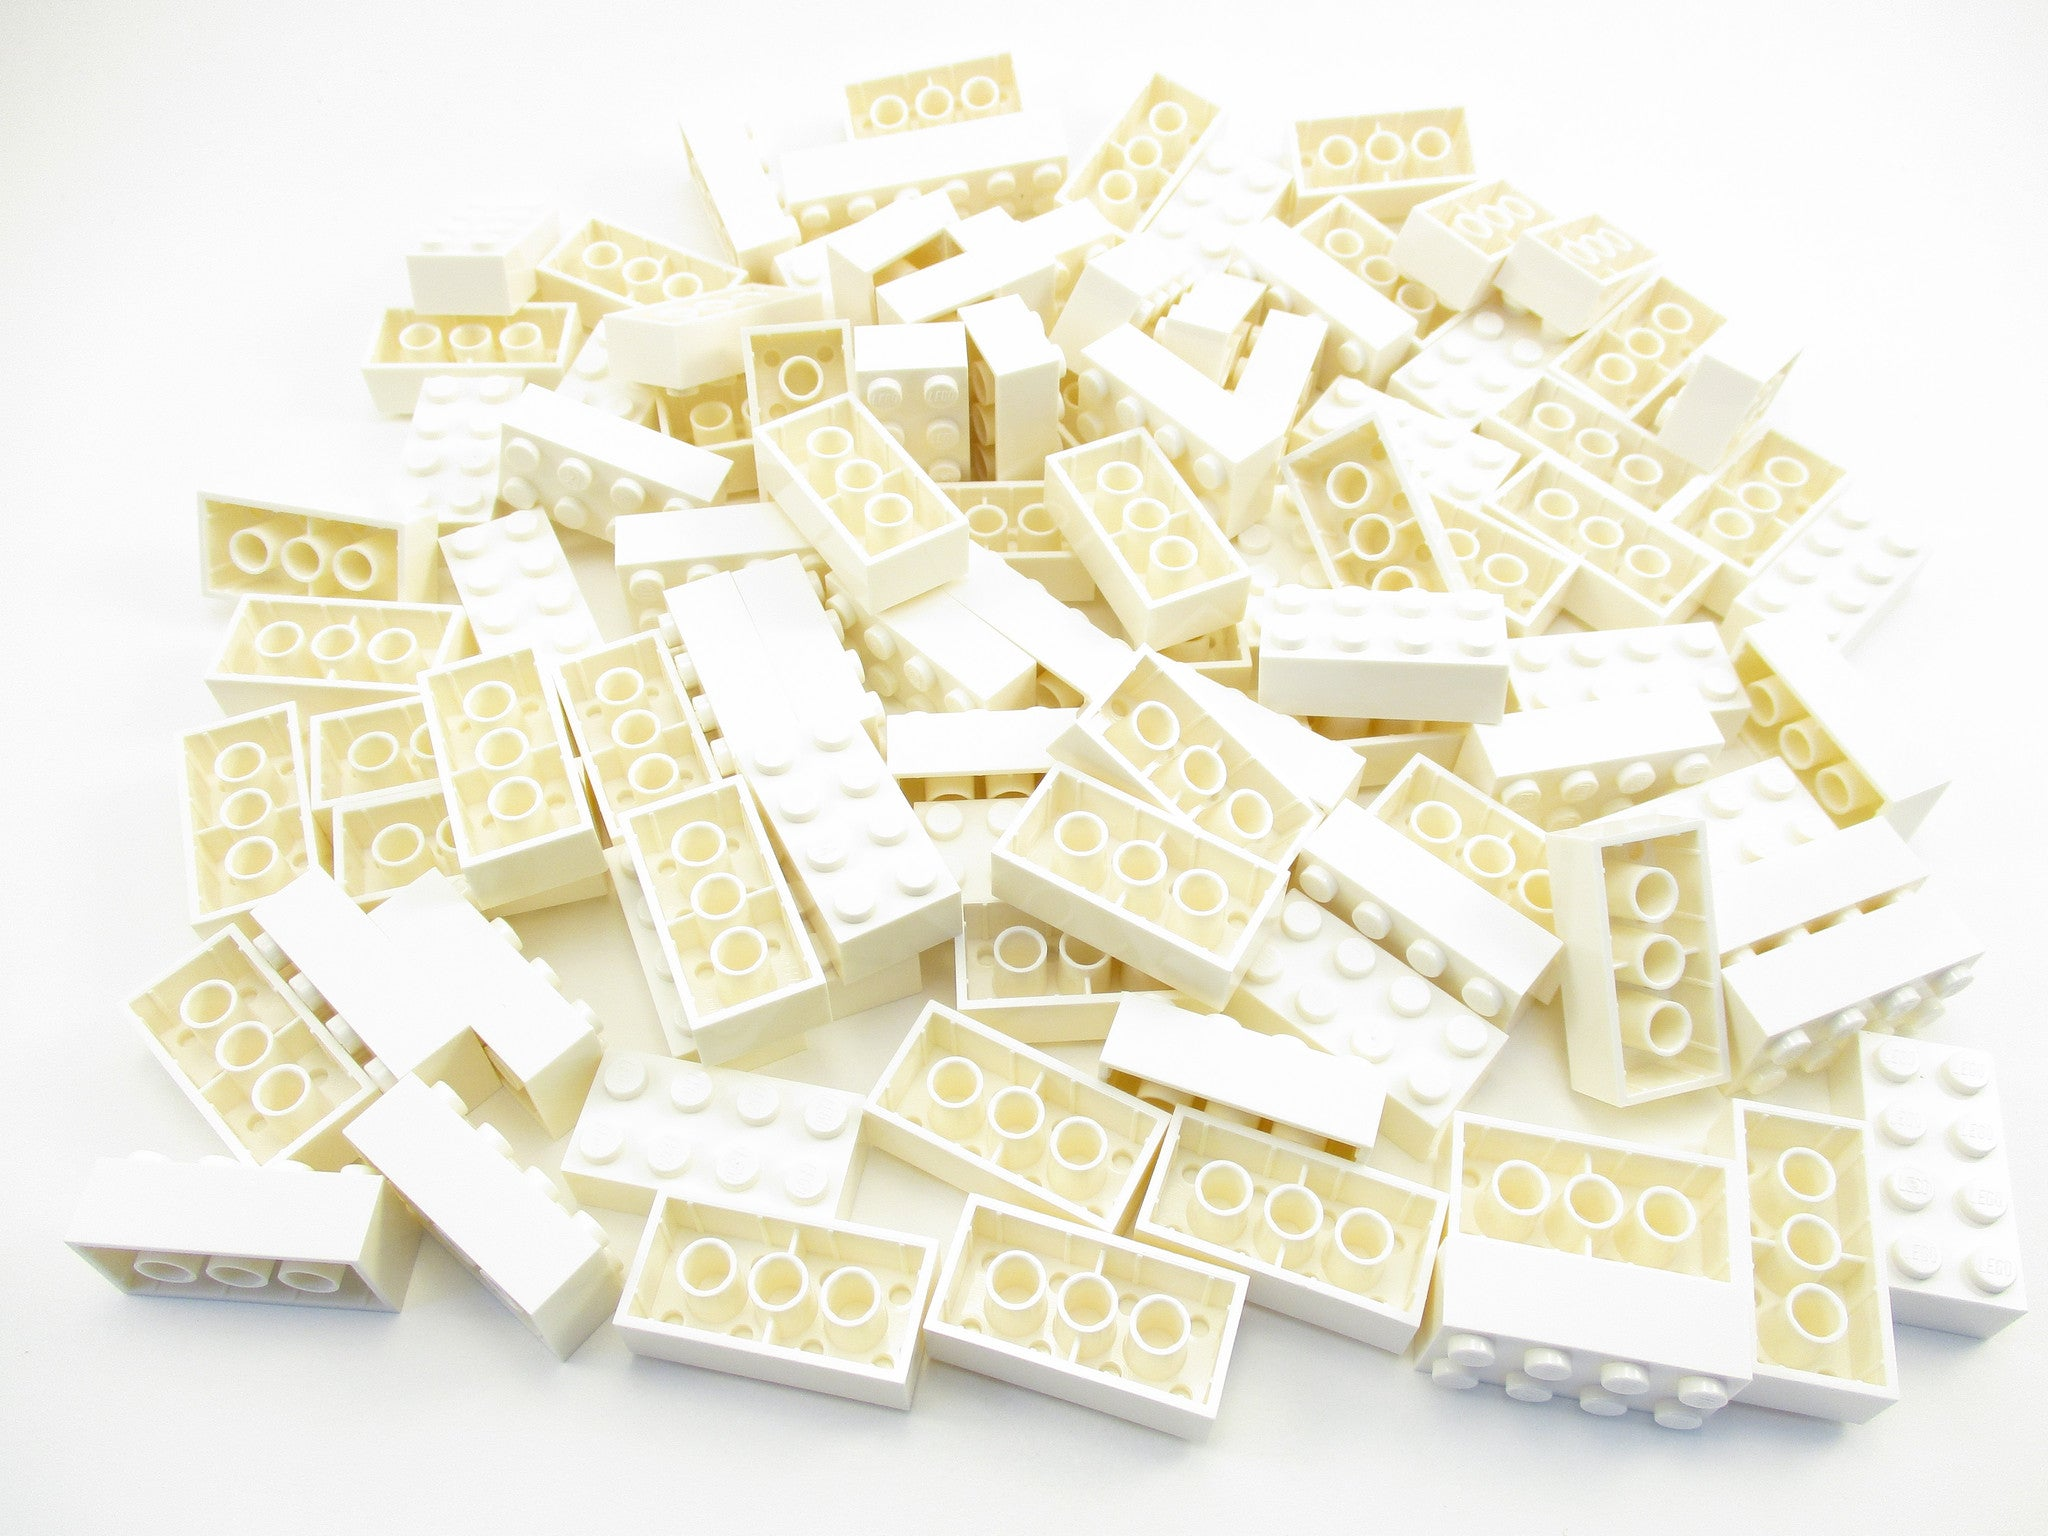 LEGO White Brick 2x4 Lot of 100 Parts Pieces 3001